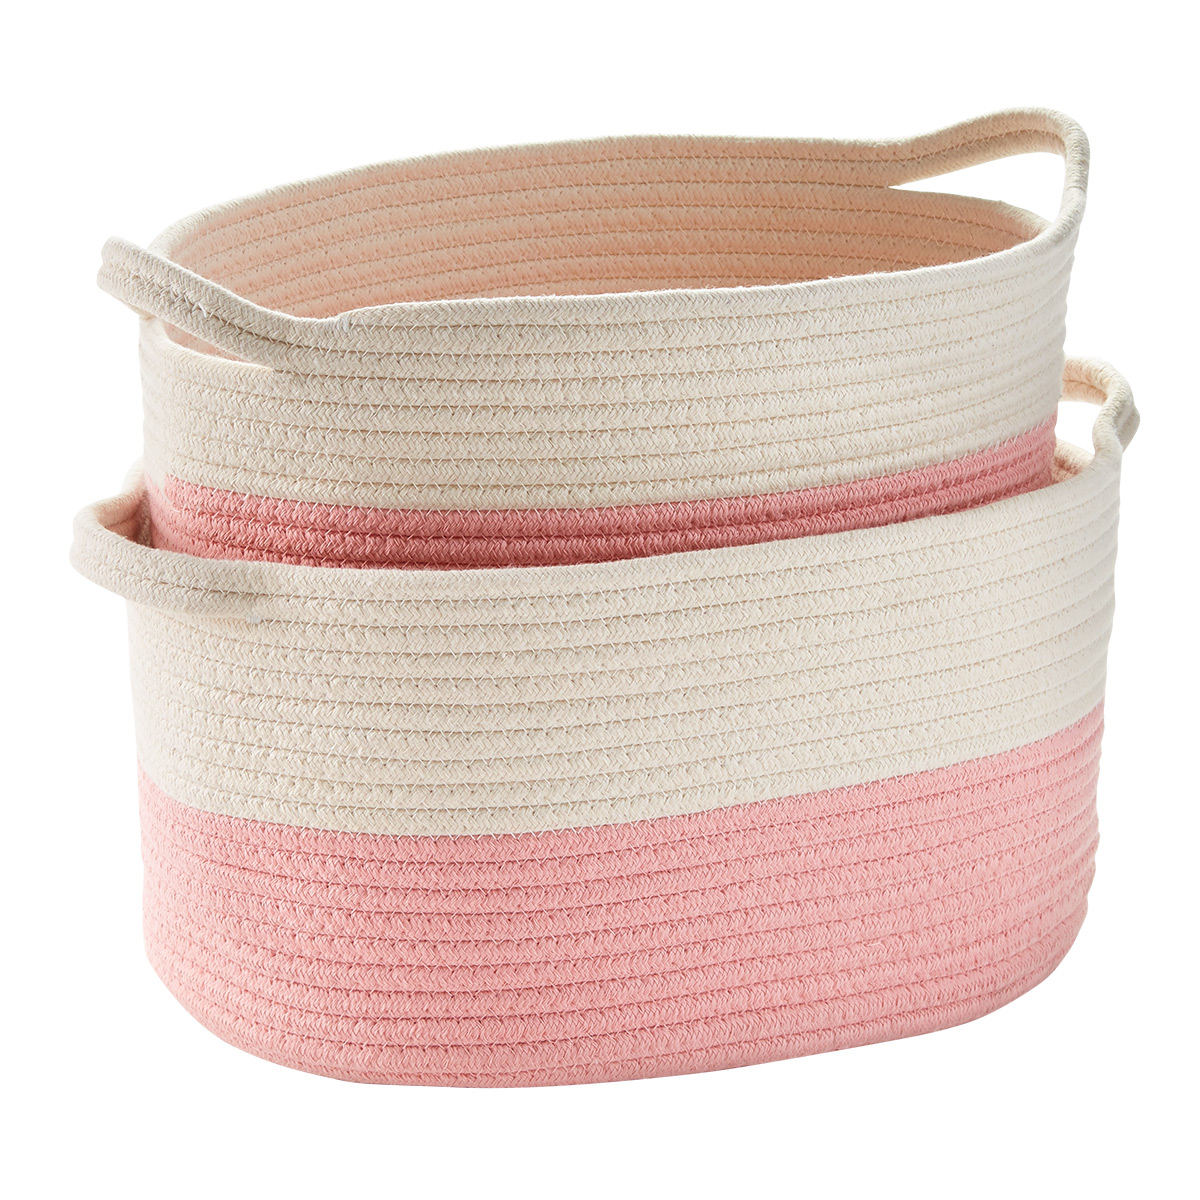 Pink Cotton Rope Oval Bins with Handles